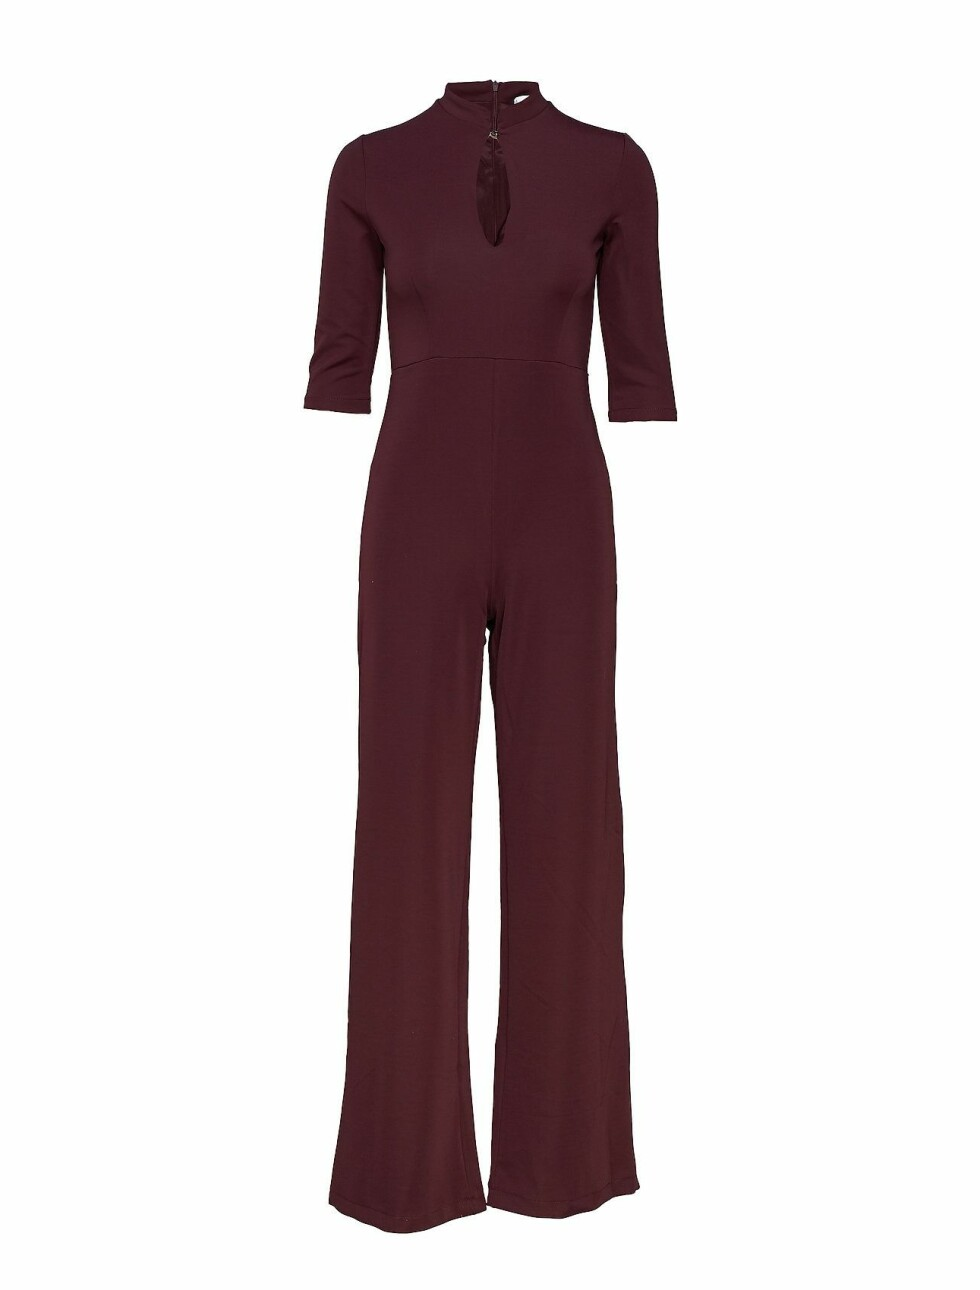 Jumpsuit fra Mango |499,-| https://www.boozt.com/no/no/mango/shift-long-jumpsuit_19391569/19391589?navId=67362&group=listing&position=1500000